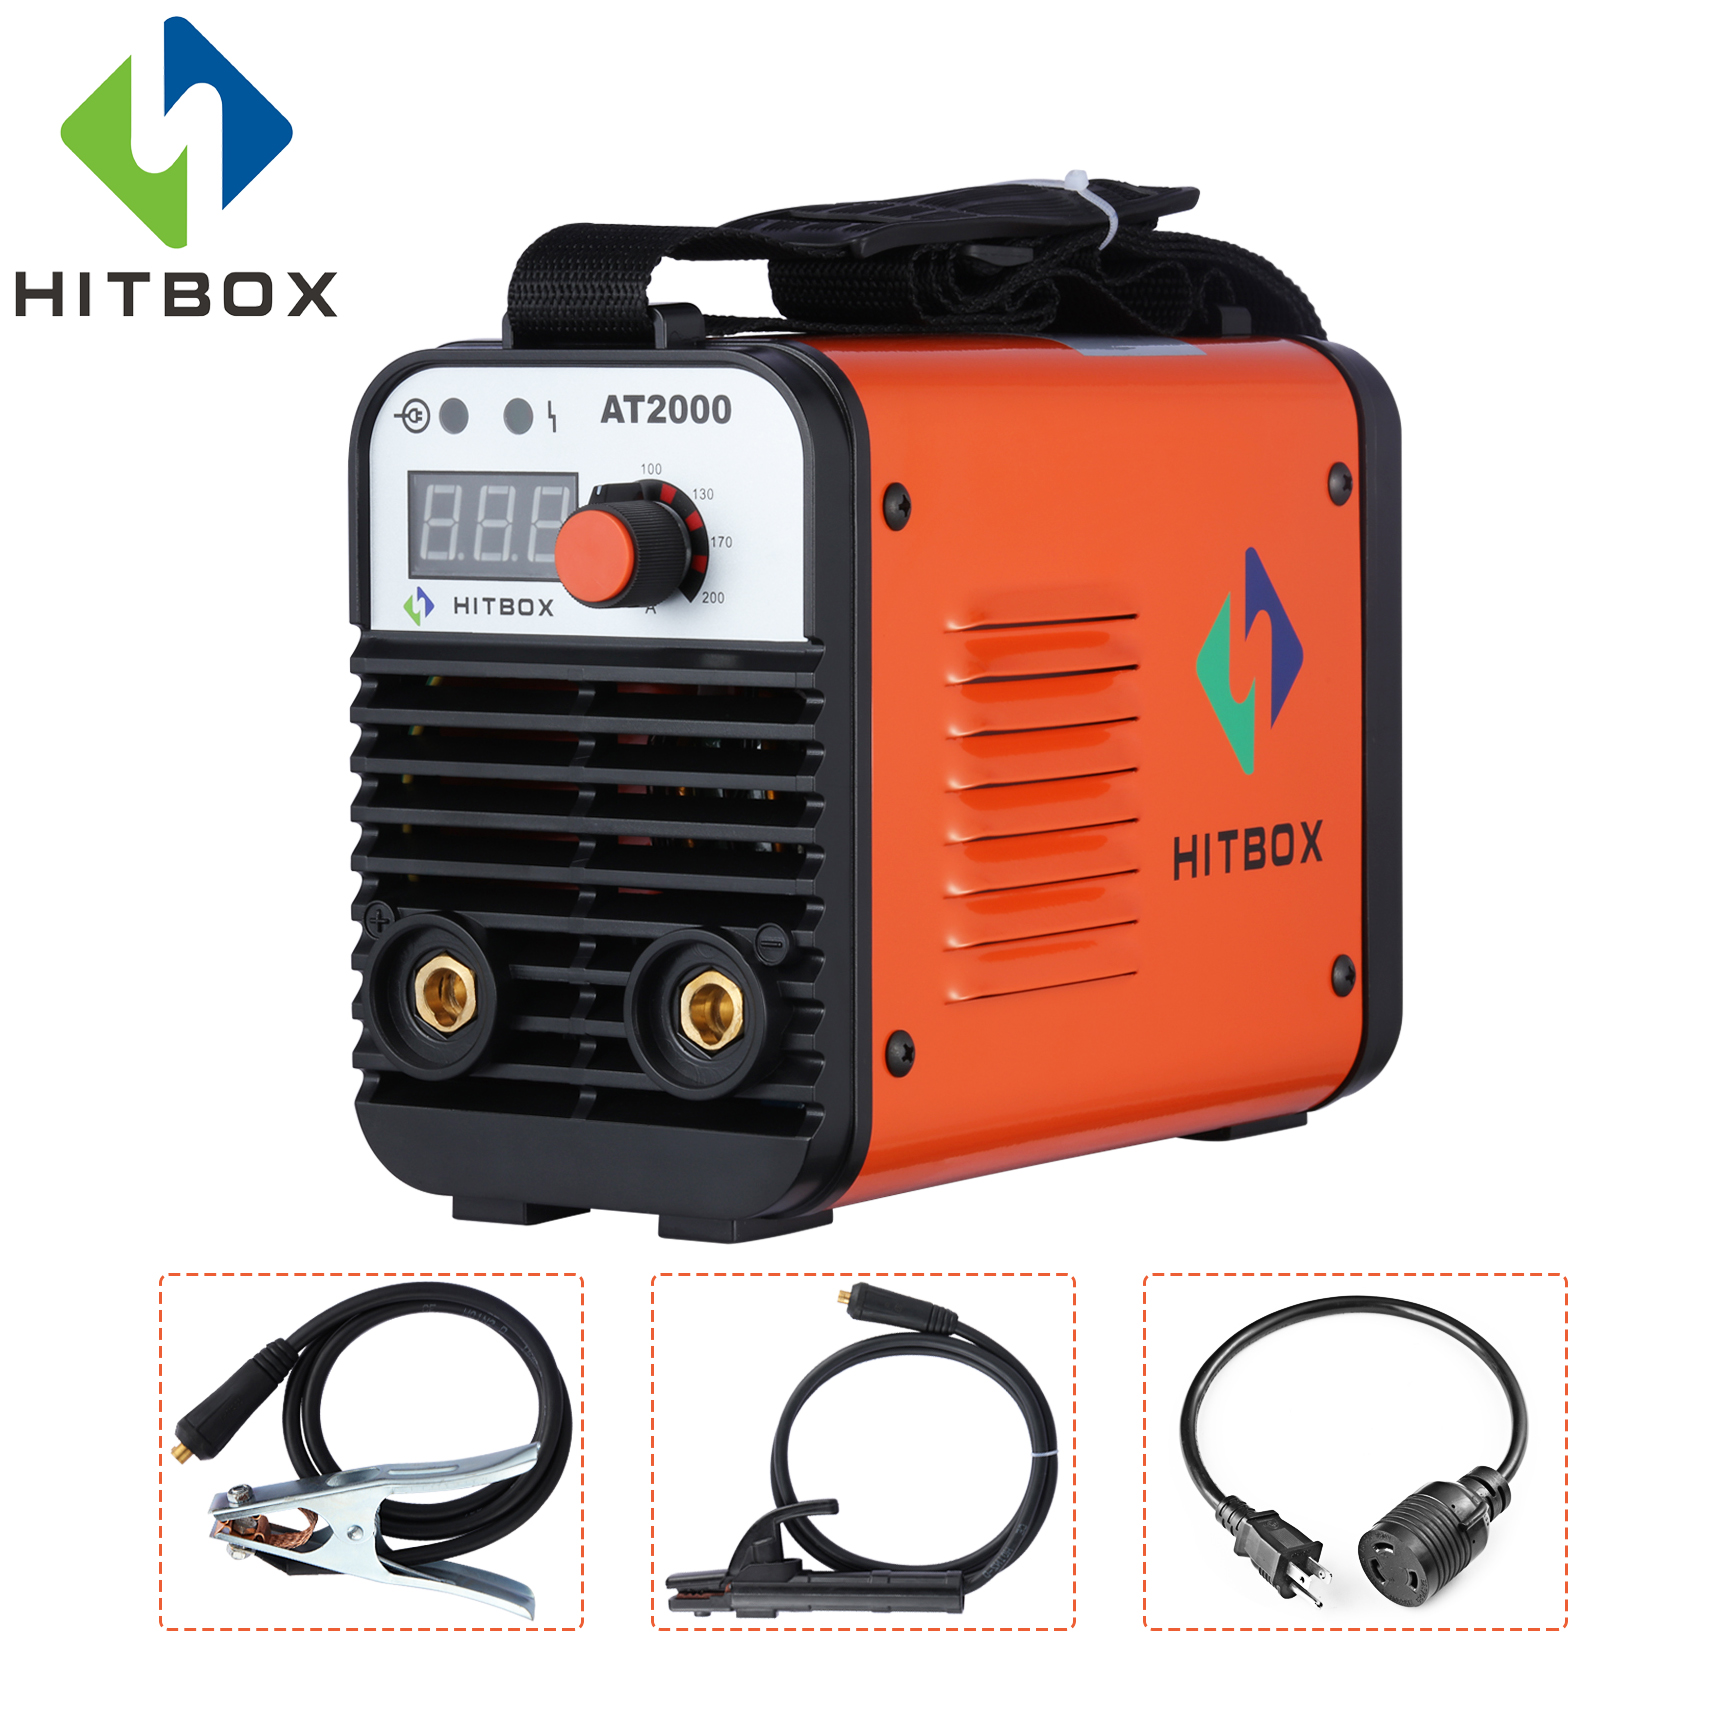 DEKO DKA 160 160A 4 1KVA IP21S Inverter Arc Electric Welding Machine